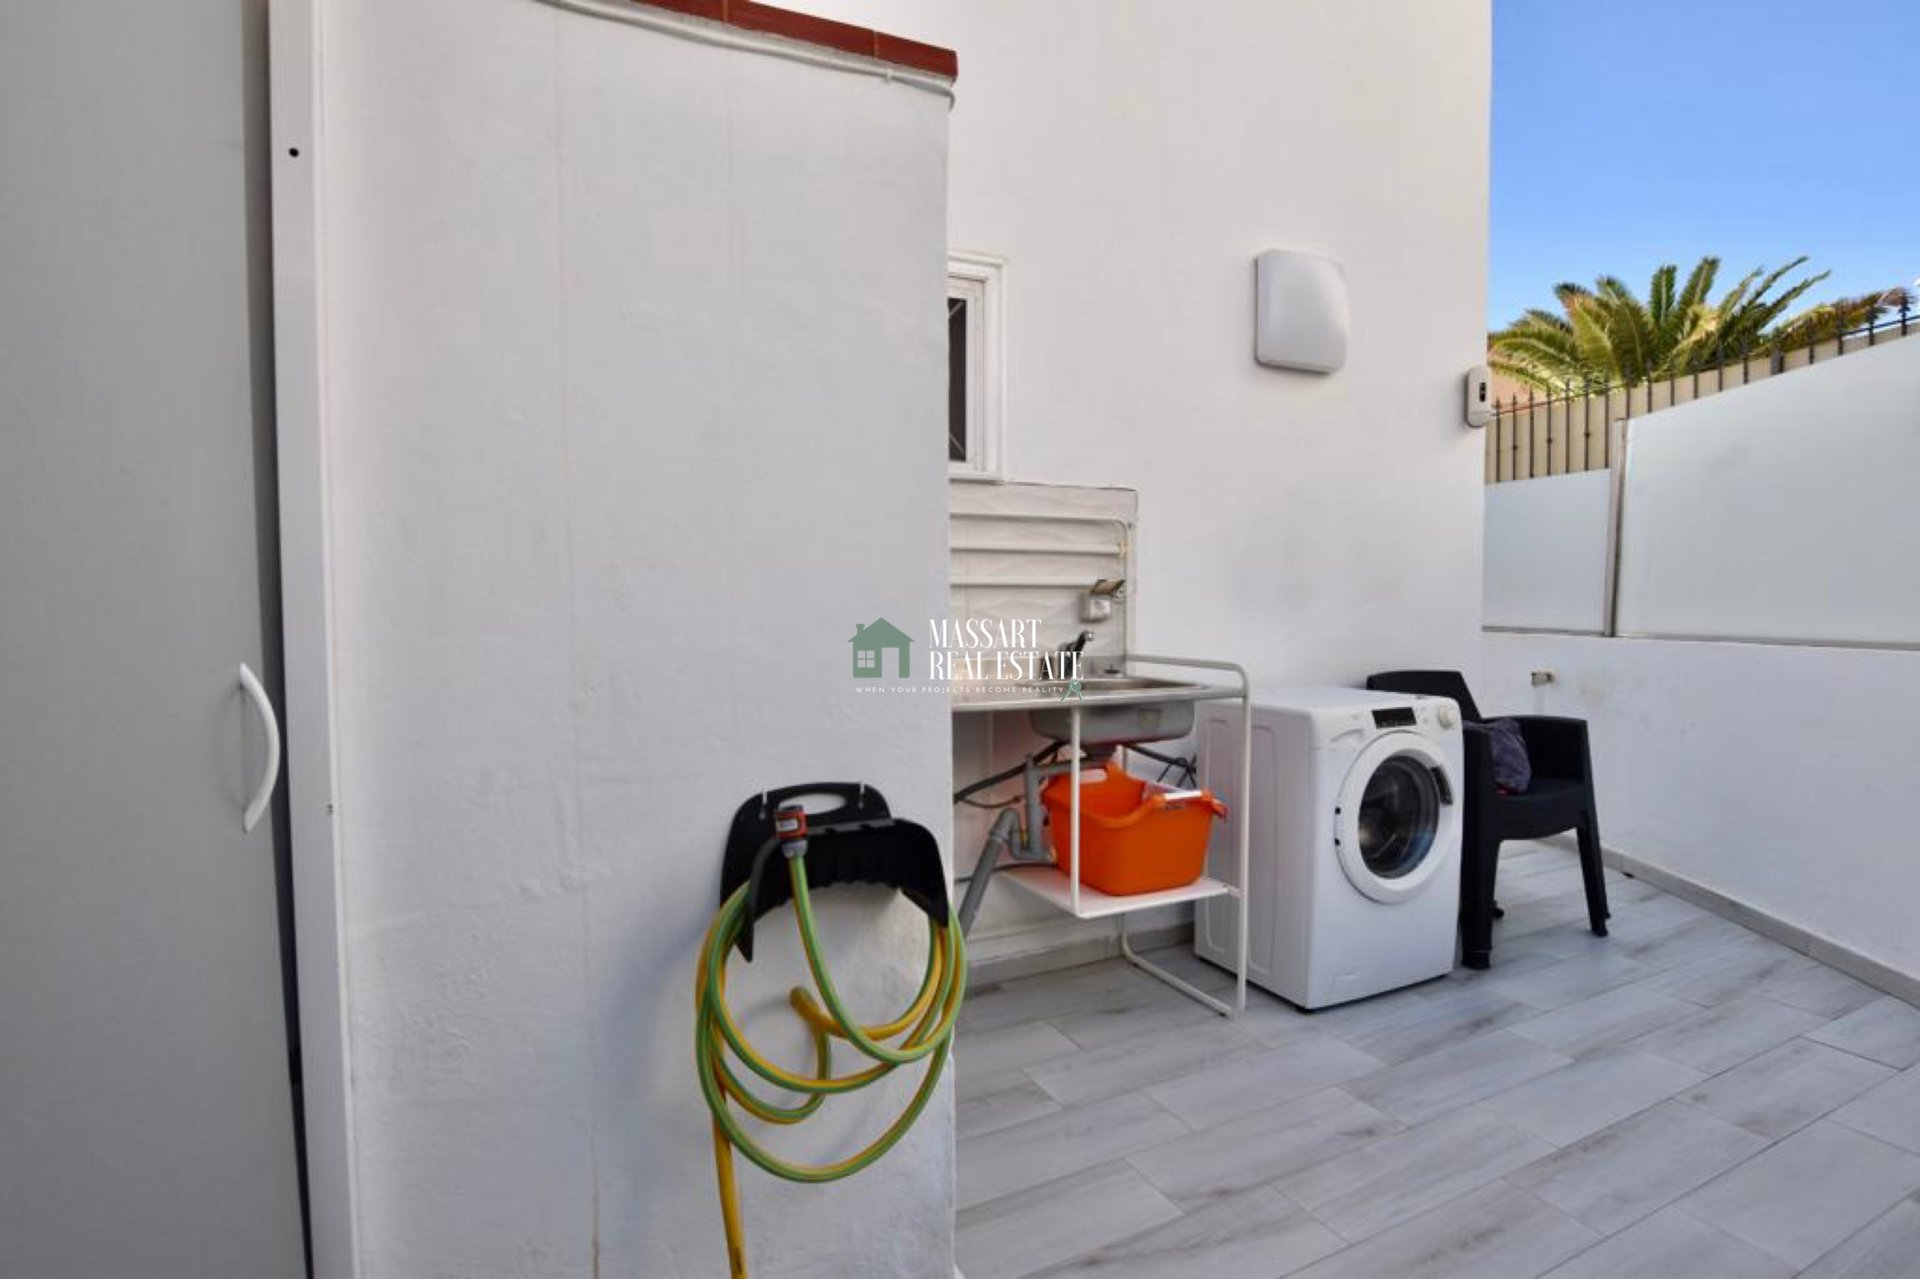 FOR SALE in Torviscas Alto, 275 m2 corner townhouse characterized by having a wonderful private terrace and offering beautiful views of the sea.